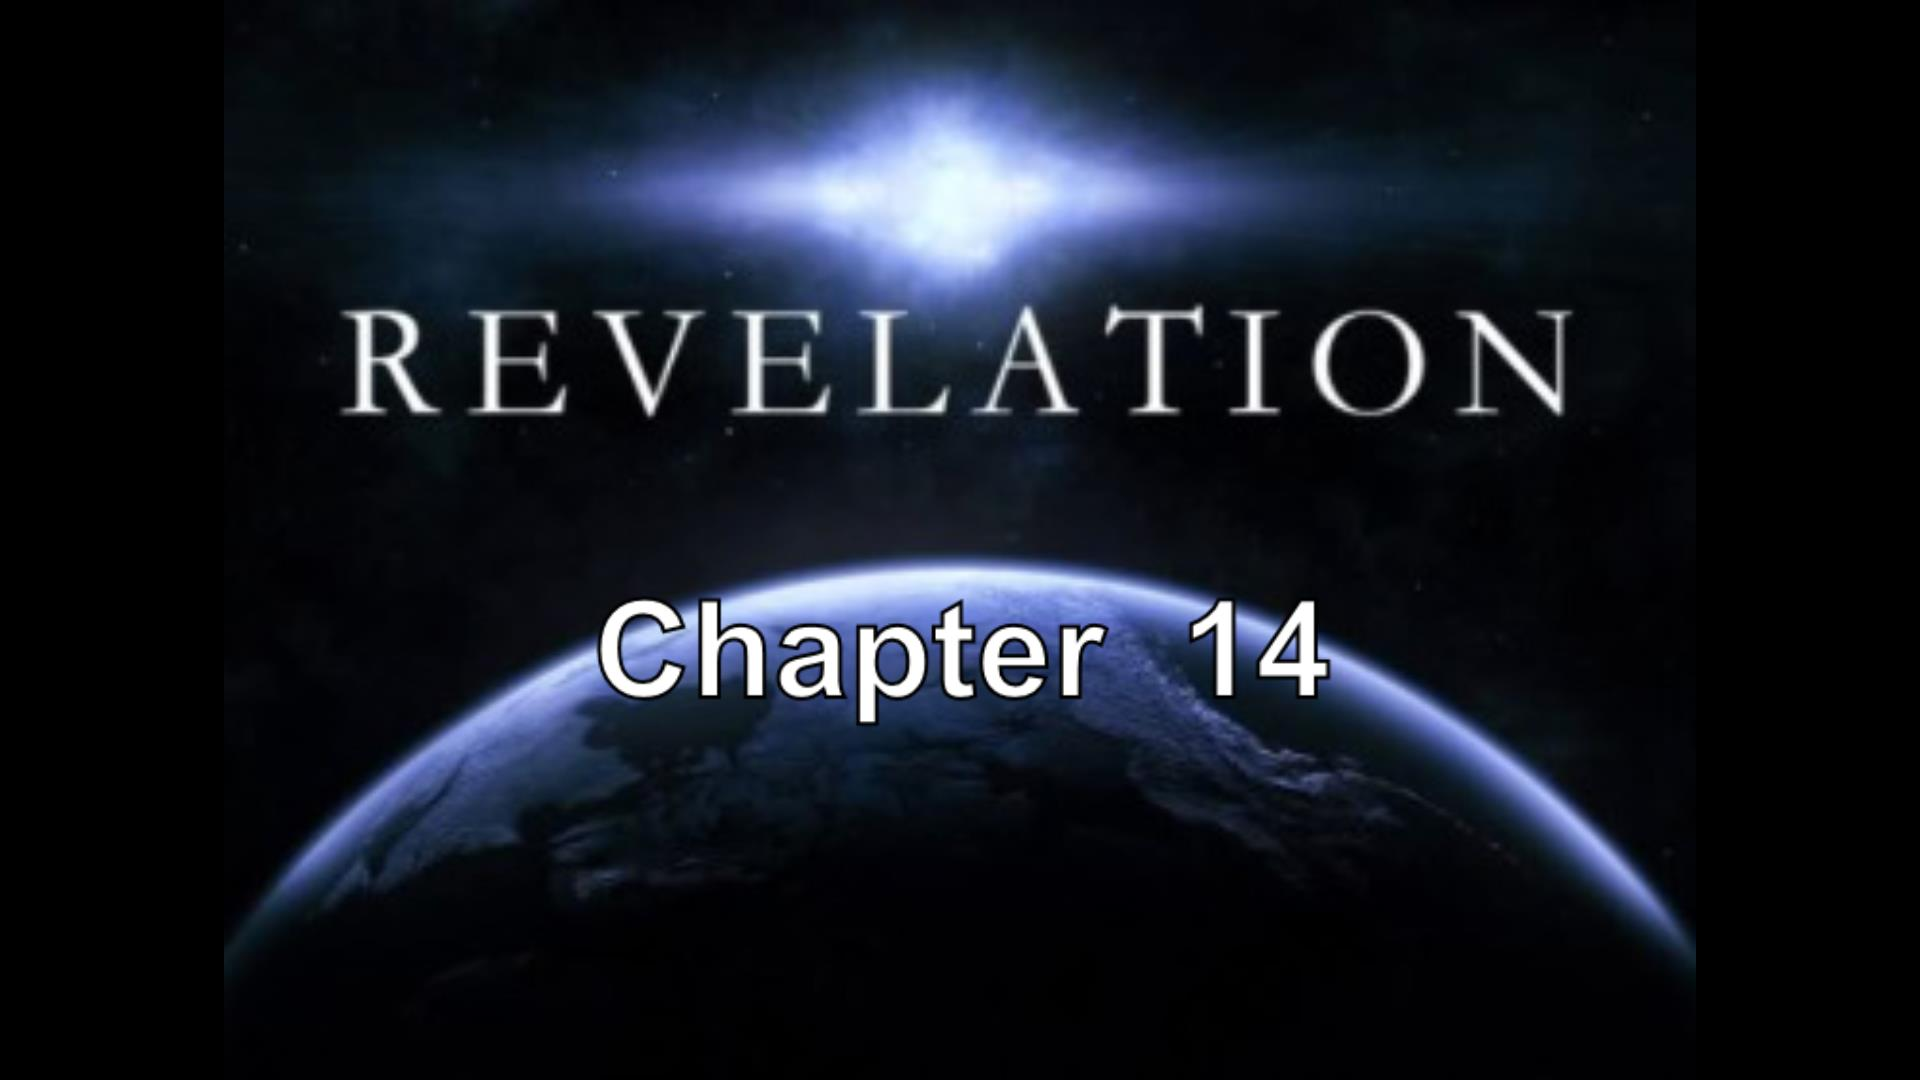 REVELATION  Chaoter 14